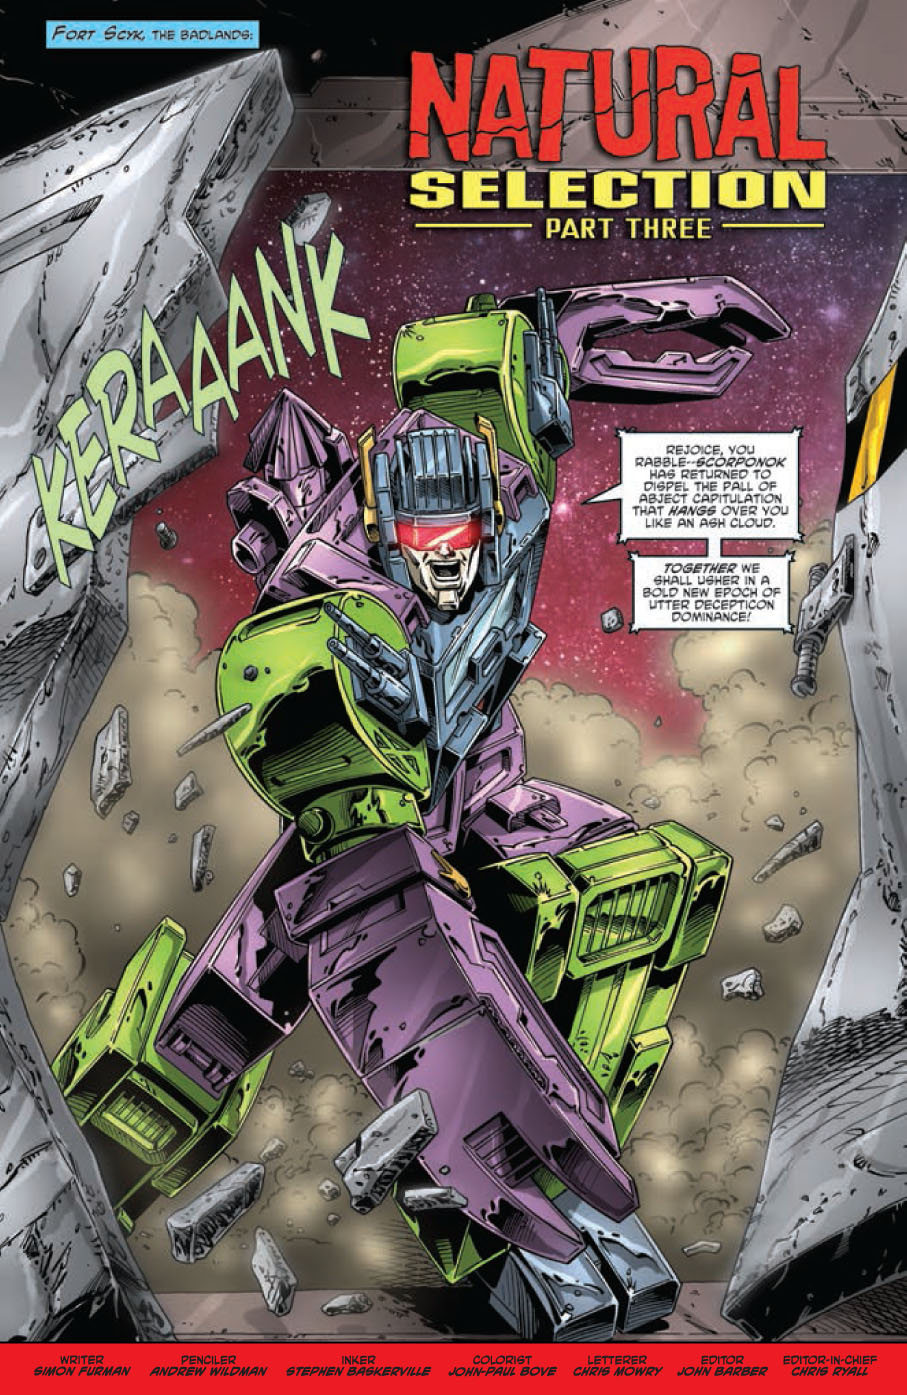 Re: Back on Board - Review of TRANSFORMERS REGENERATION #88